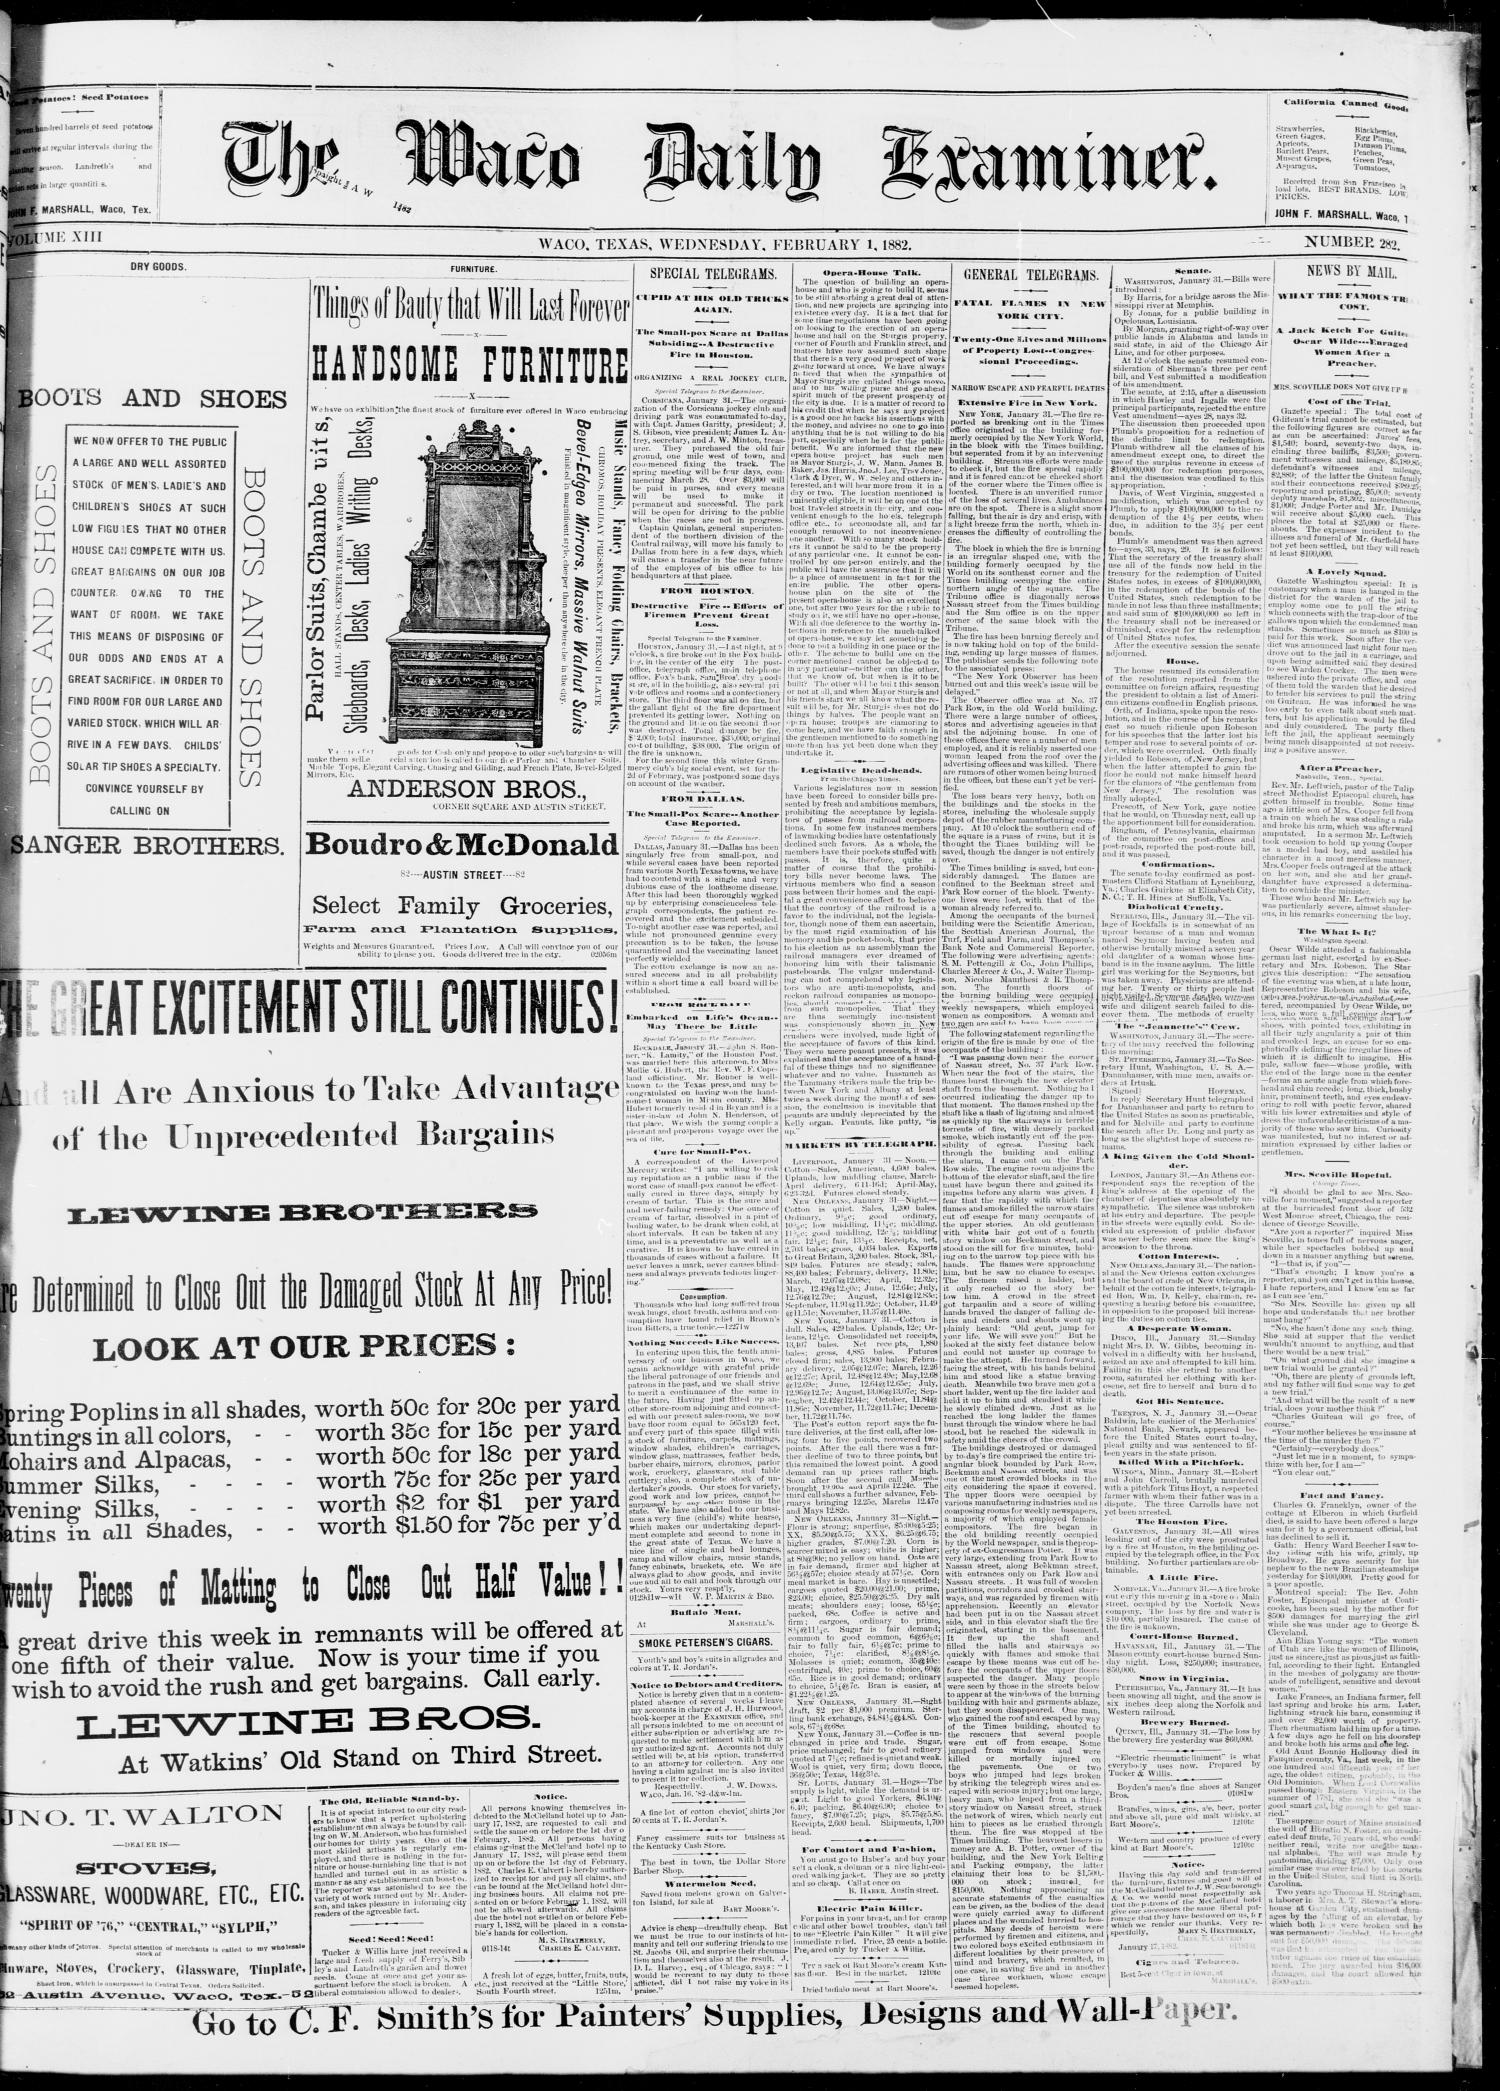 The Waco Daily Examiner. (Waco, Tex.), Vol. 13, No. 282, Ed. 1, Wednesday, February 1, 1882                                                                                                      [Sequence #]: 1 of 4